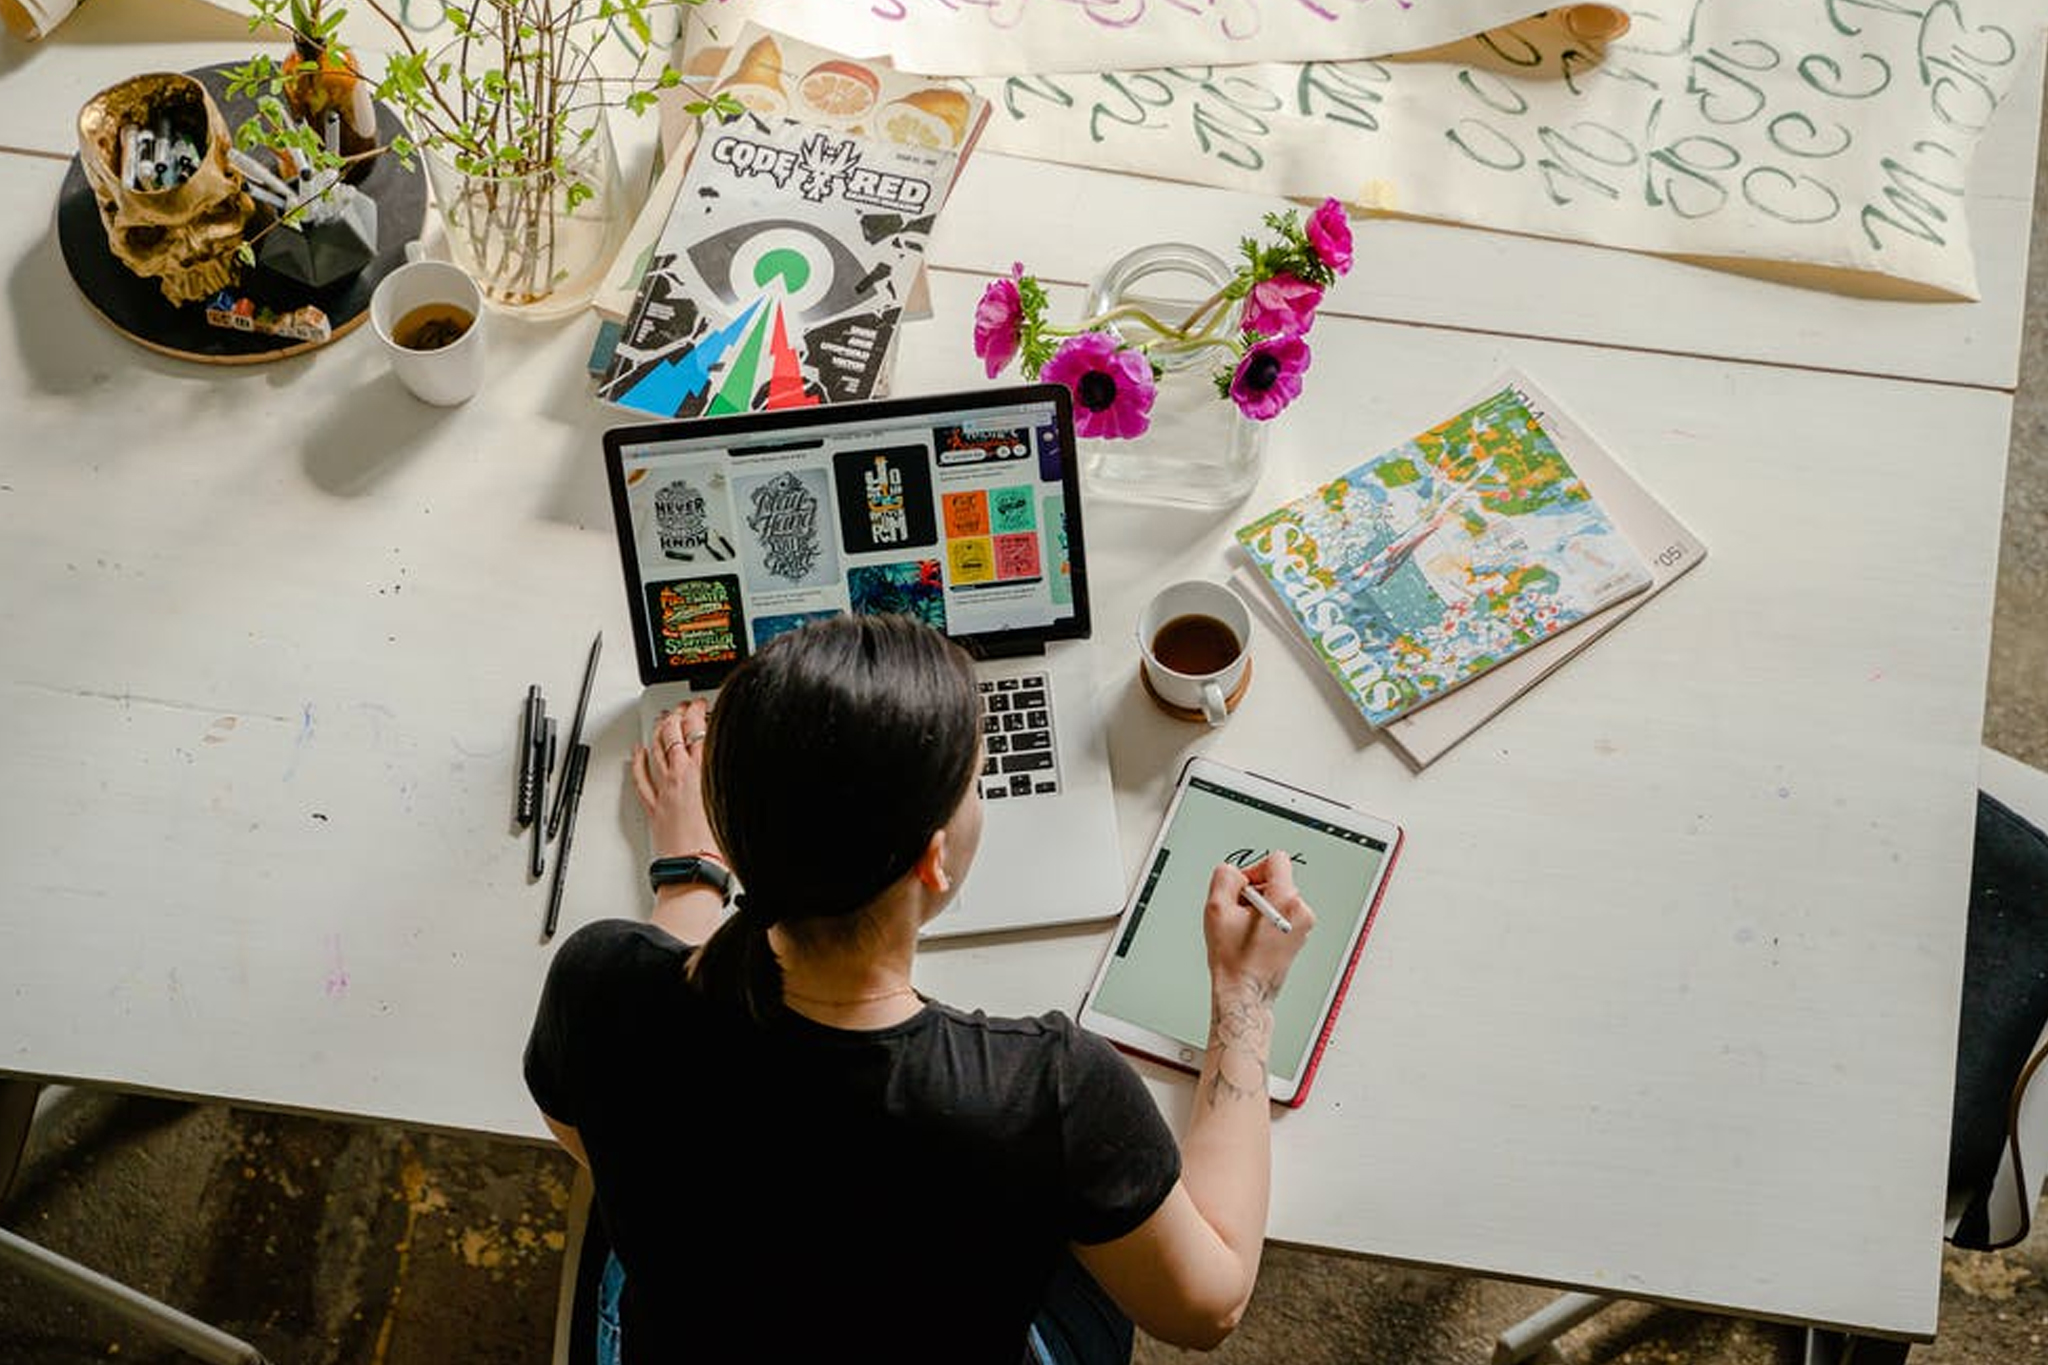 This training is your ticket to better graphic design and development skills